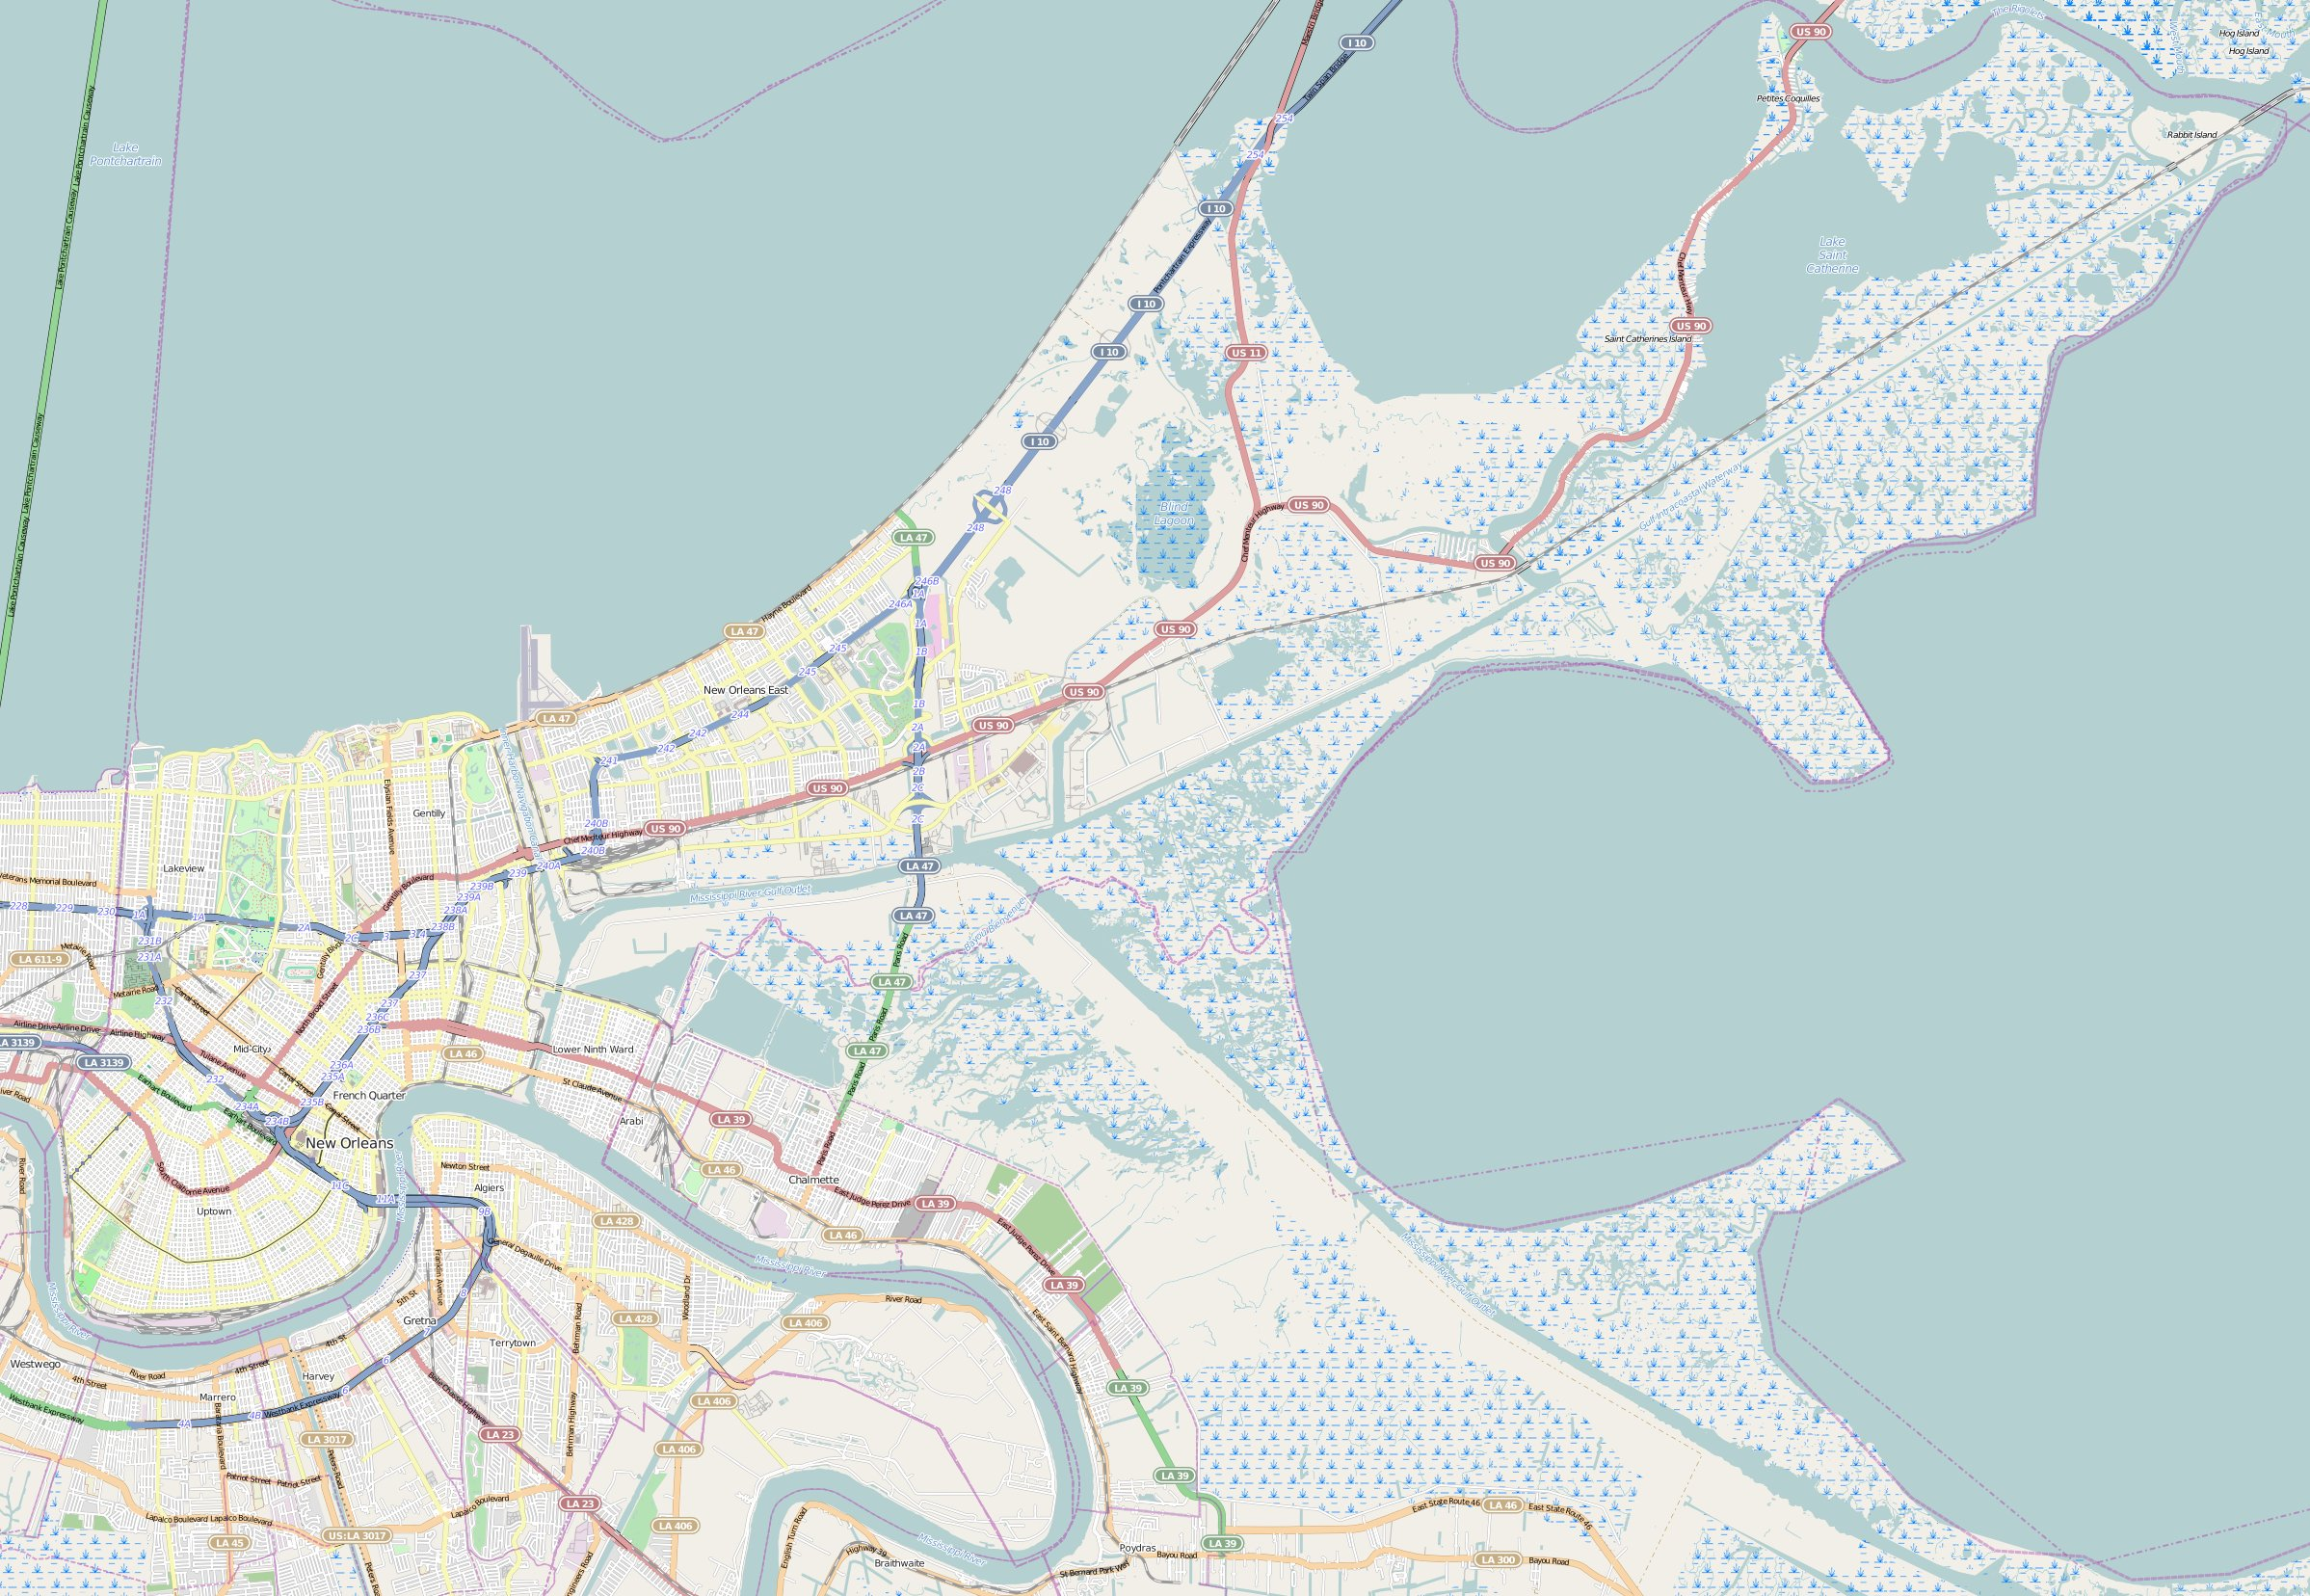 FileMap New Orleansjpg Wikimedia Commons - Map new orleans wards